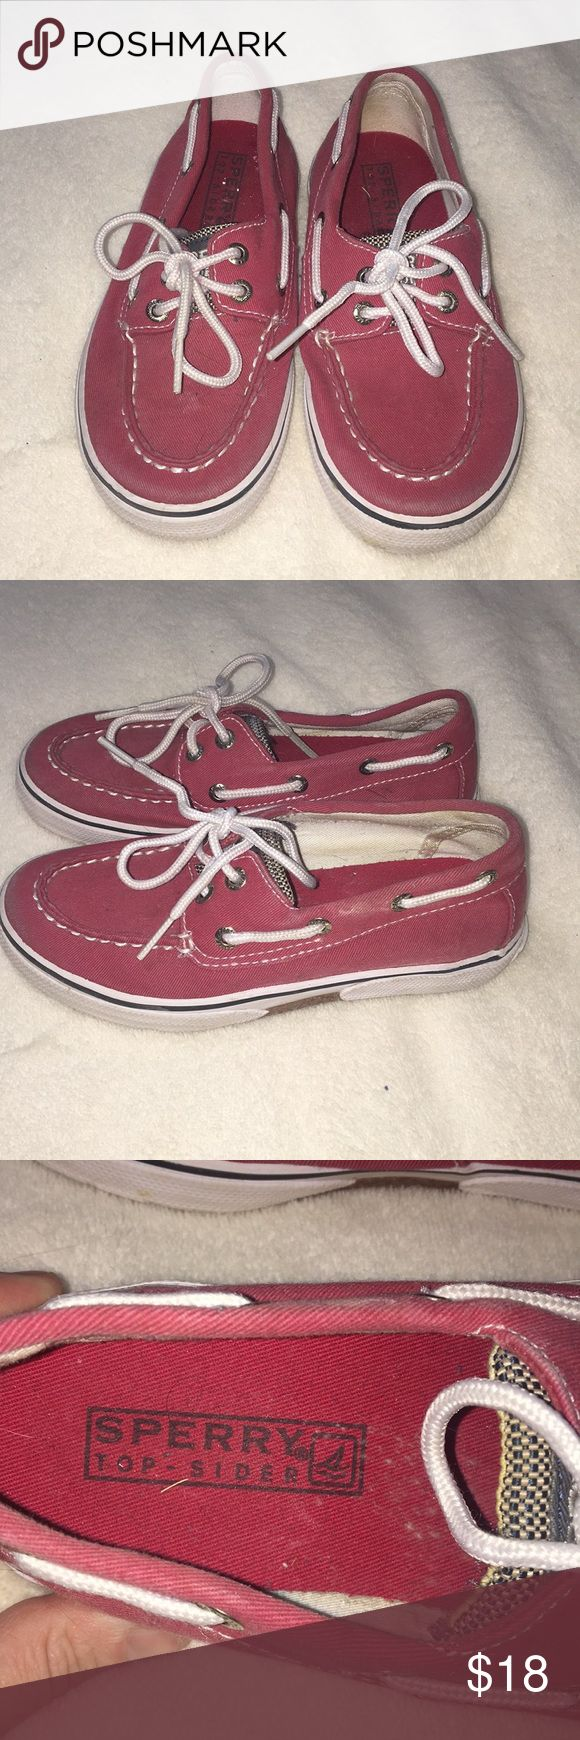 Boys Sperry Top-Sider shoes - Size 12.5 Boys Sperry Top-Sider shoes - Size 12.5. Color is red.  These were worn a few times to Church only.  Lots of life left. Sperry Top-Sider Shoes